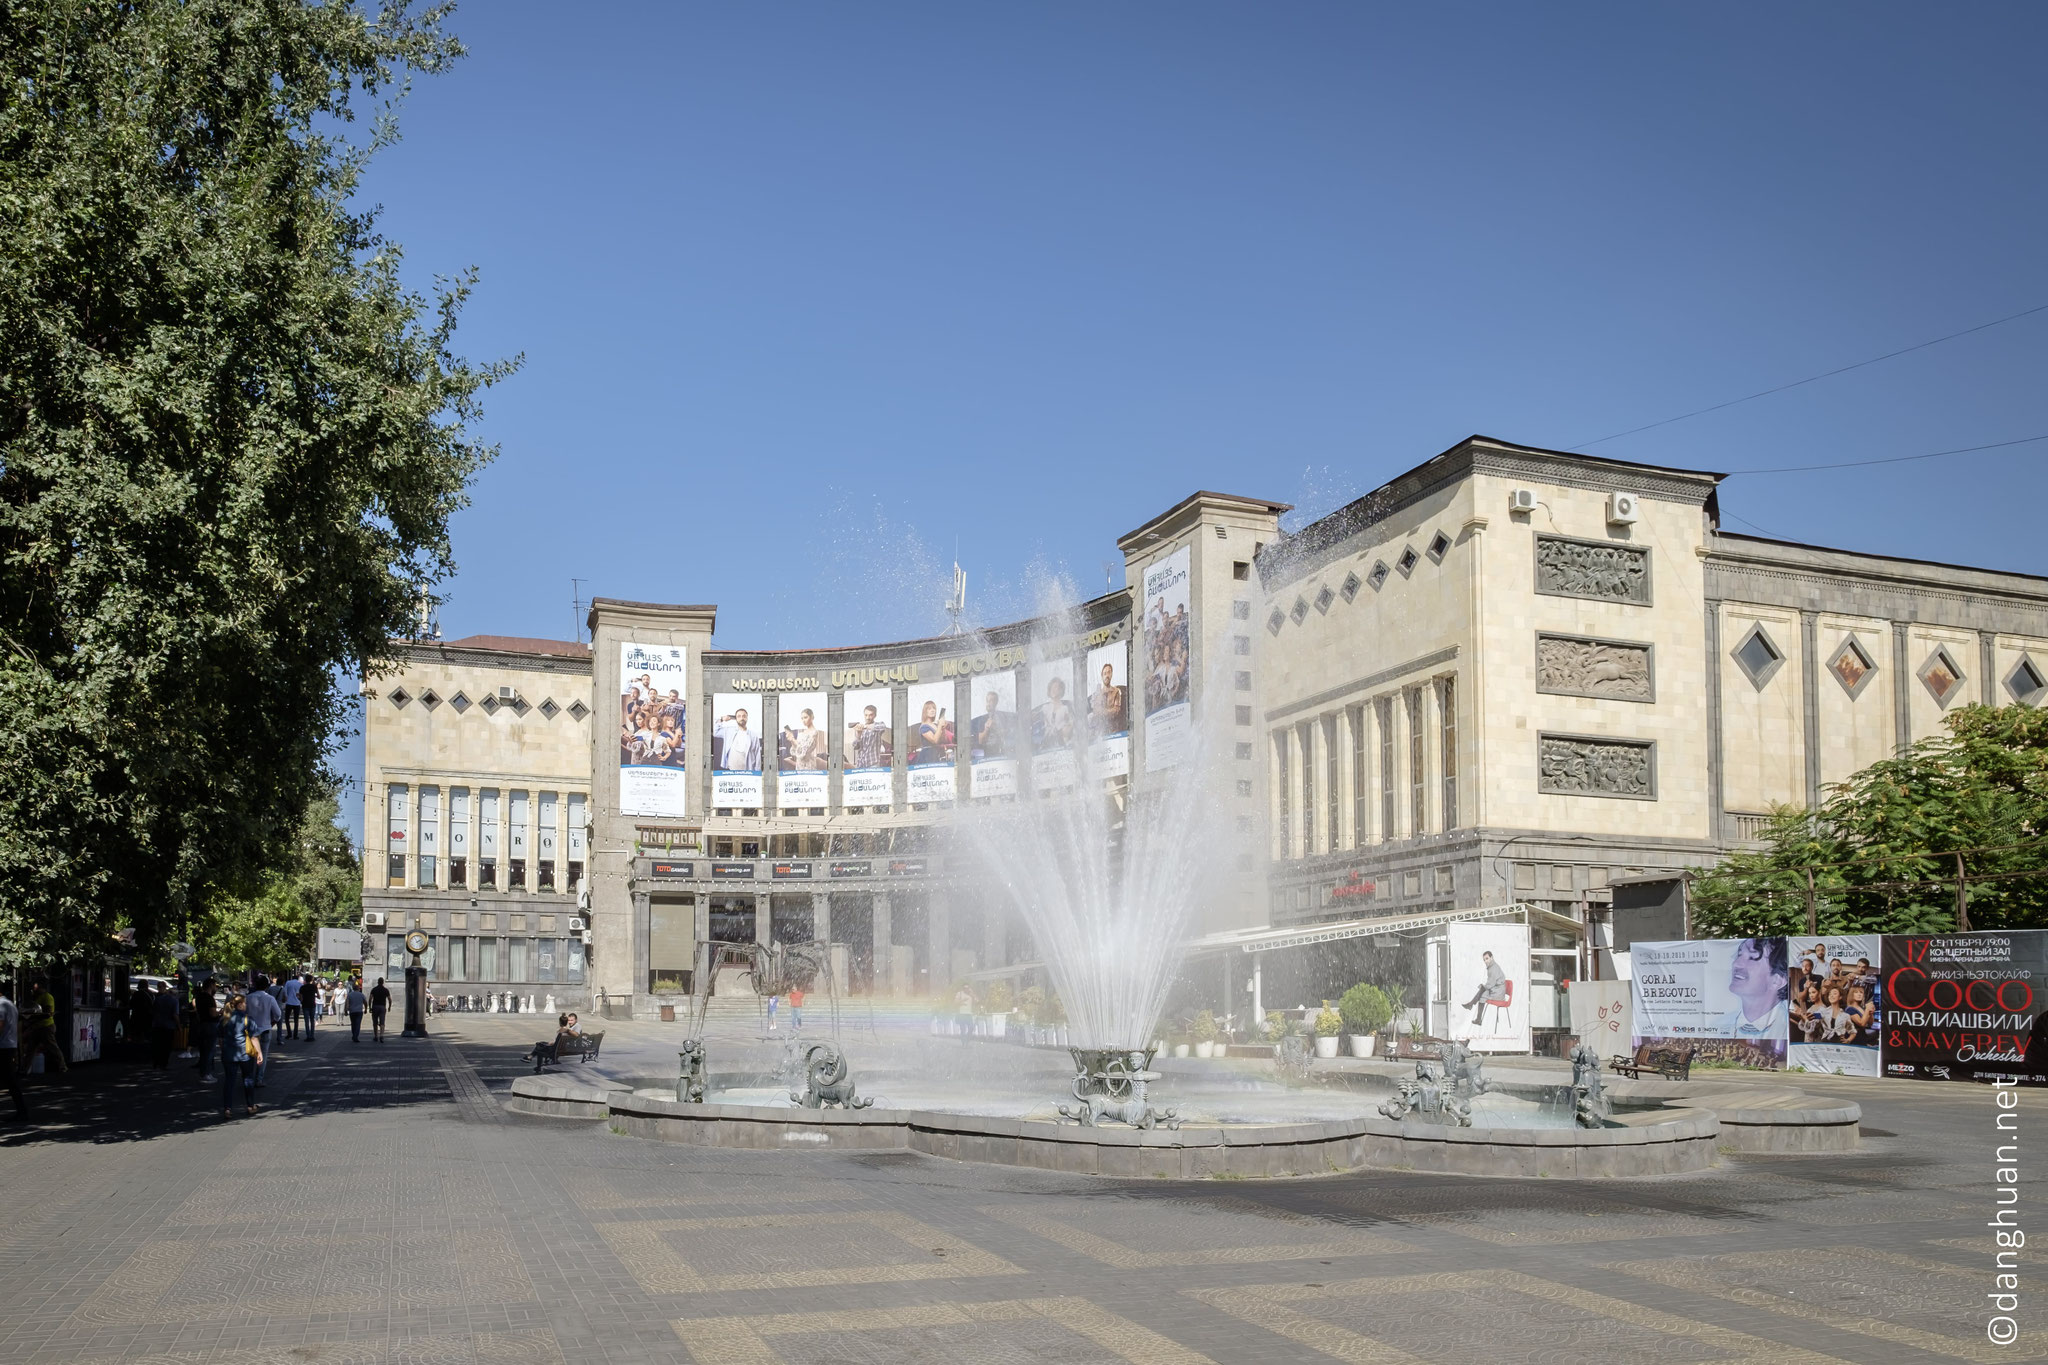 Place Charles Arznavour